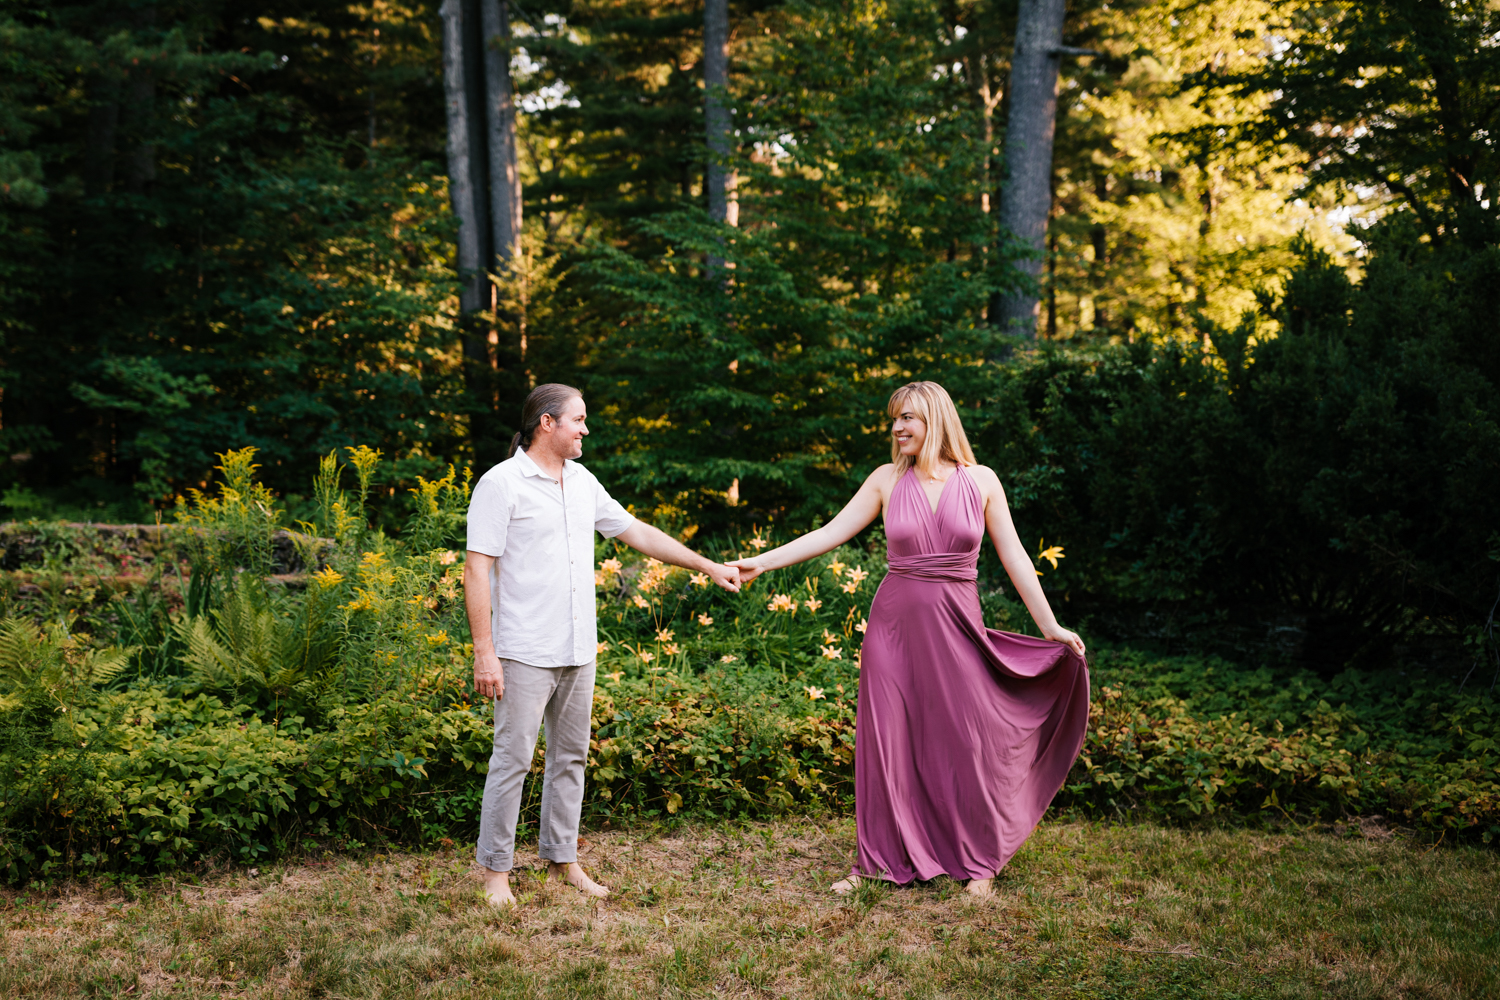 woodsy-engagement-dublin-new-hampshire-fun-andrea-van-orsouw-photography-adventurous-photographer-natural.jpg